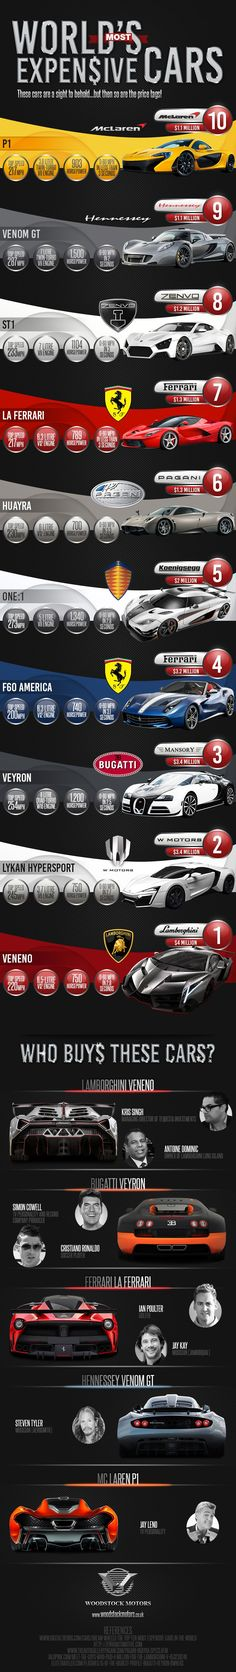 world's most expensive production cars  #RePin by AT Social Media Marketing - Pinterest Marketing Specialists ATSocialMedia.co.uk